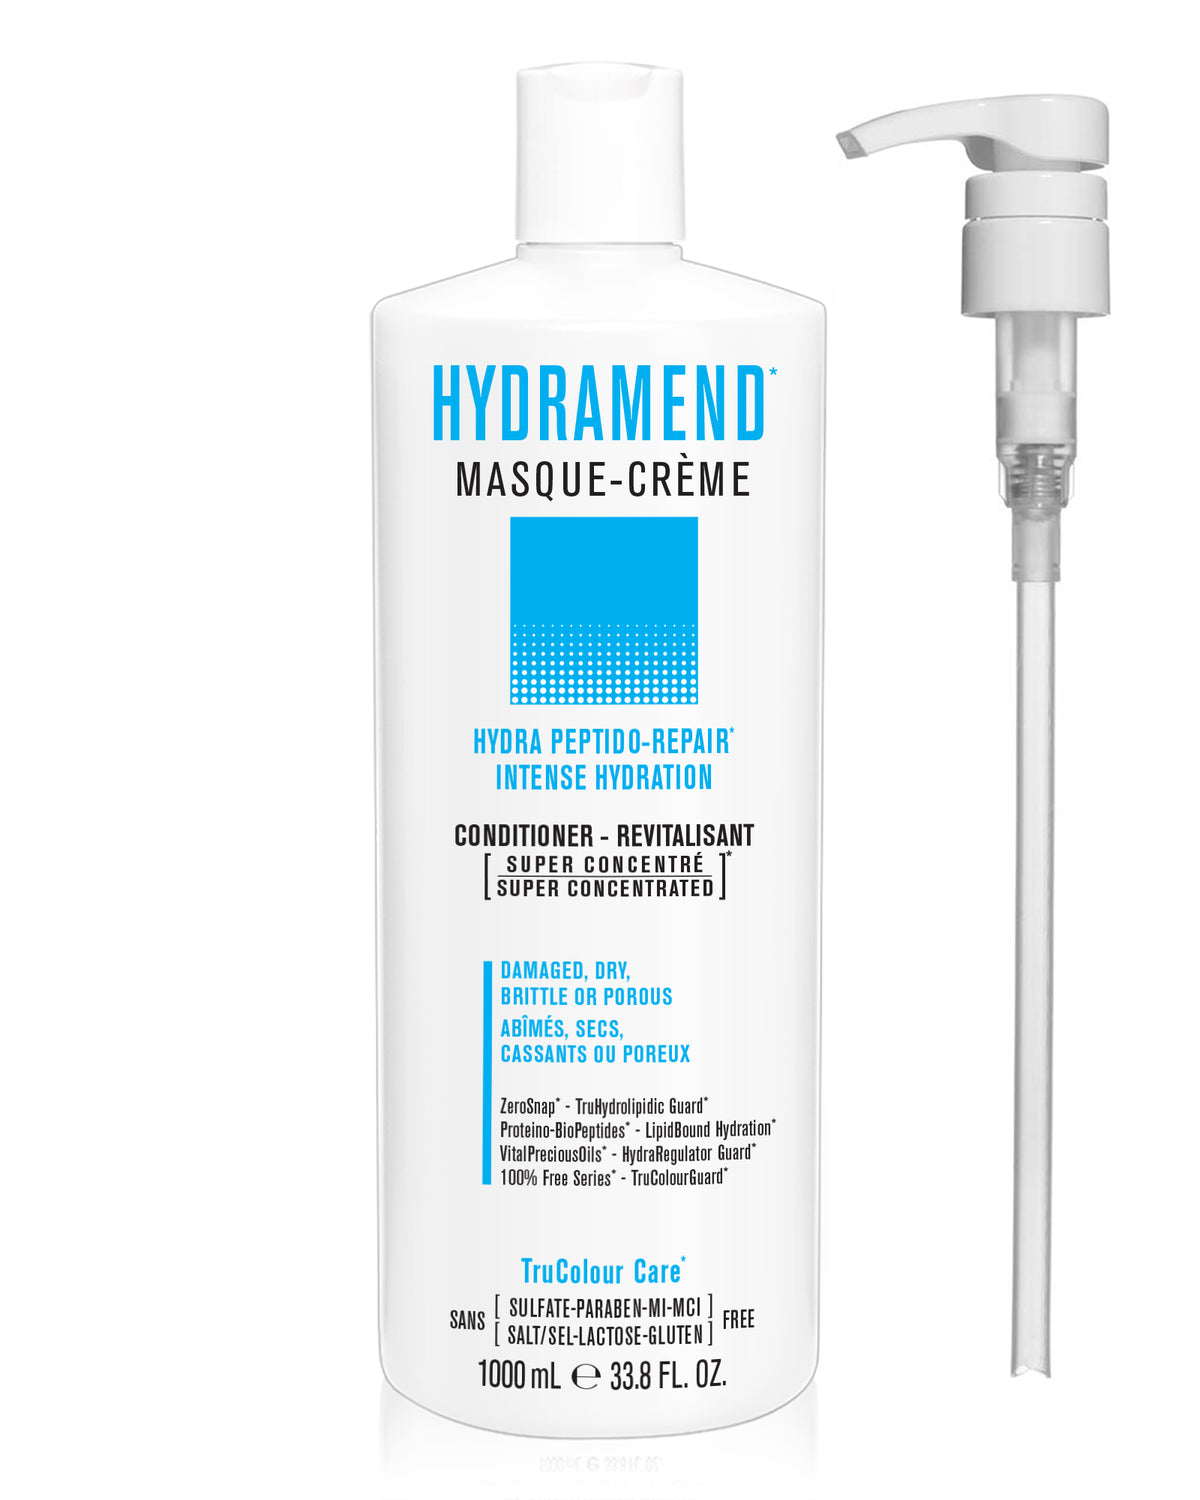 HYDRAMEND Intense Repair & Hydration Masque-Creme (conditioner) - SNOBGIRLS.com